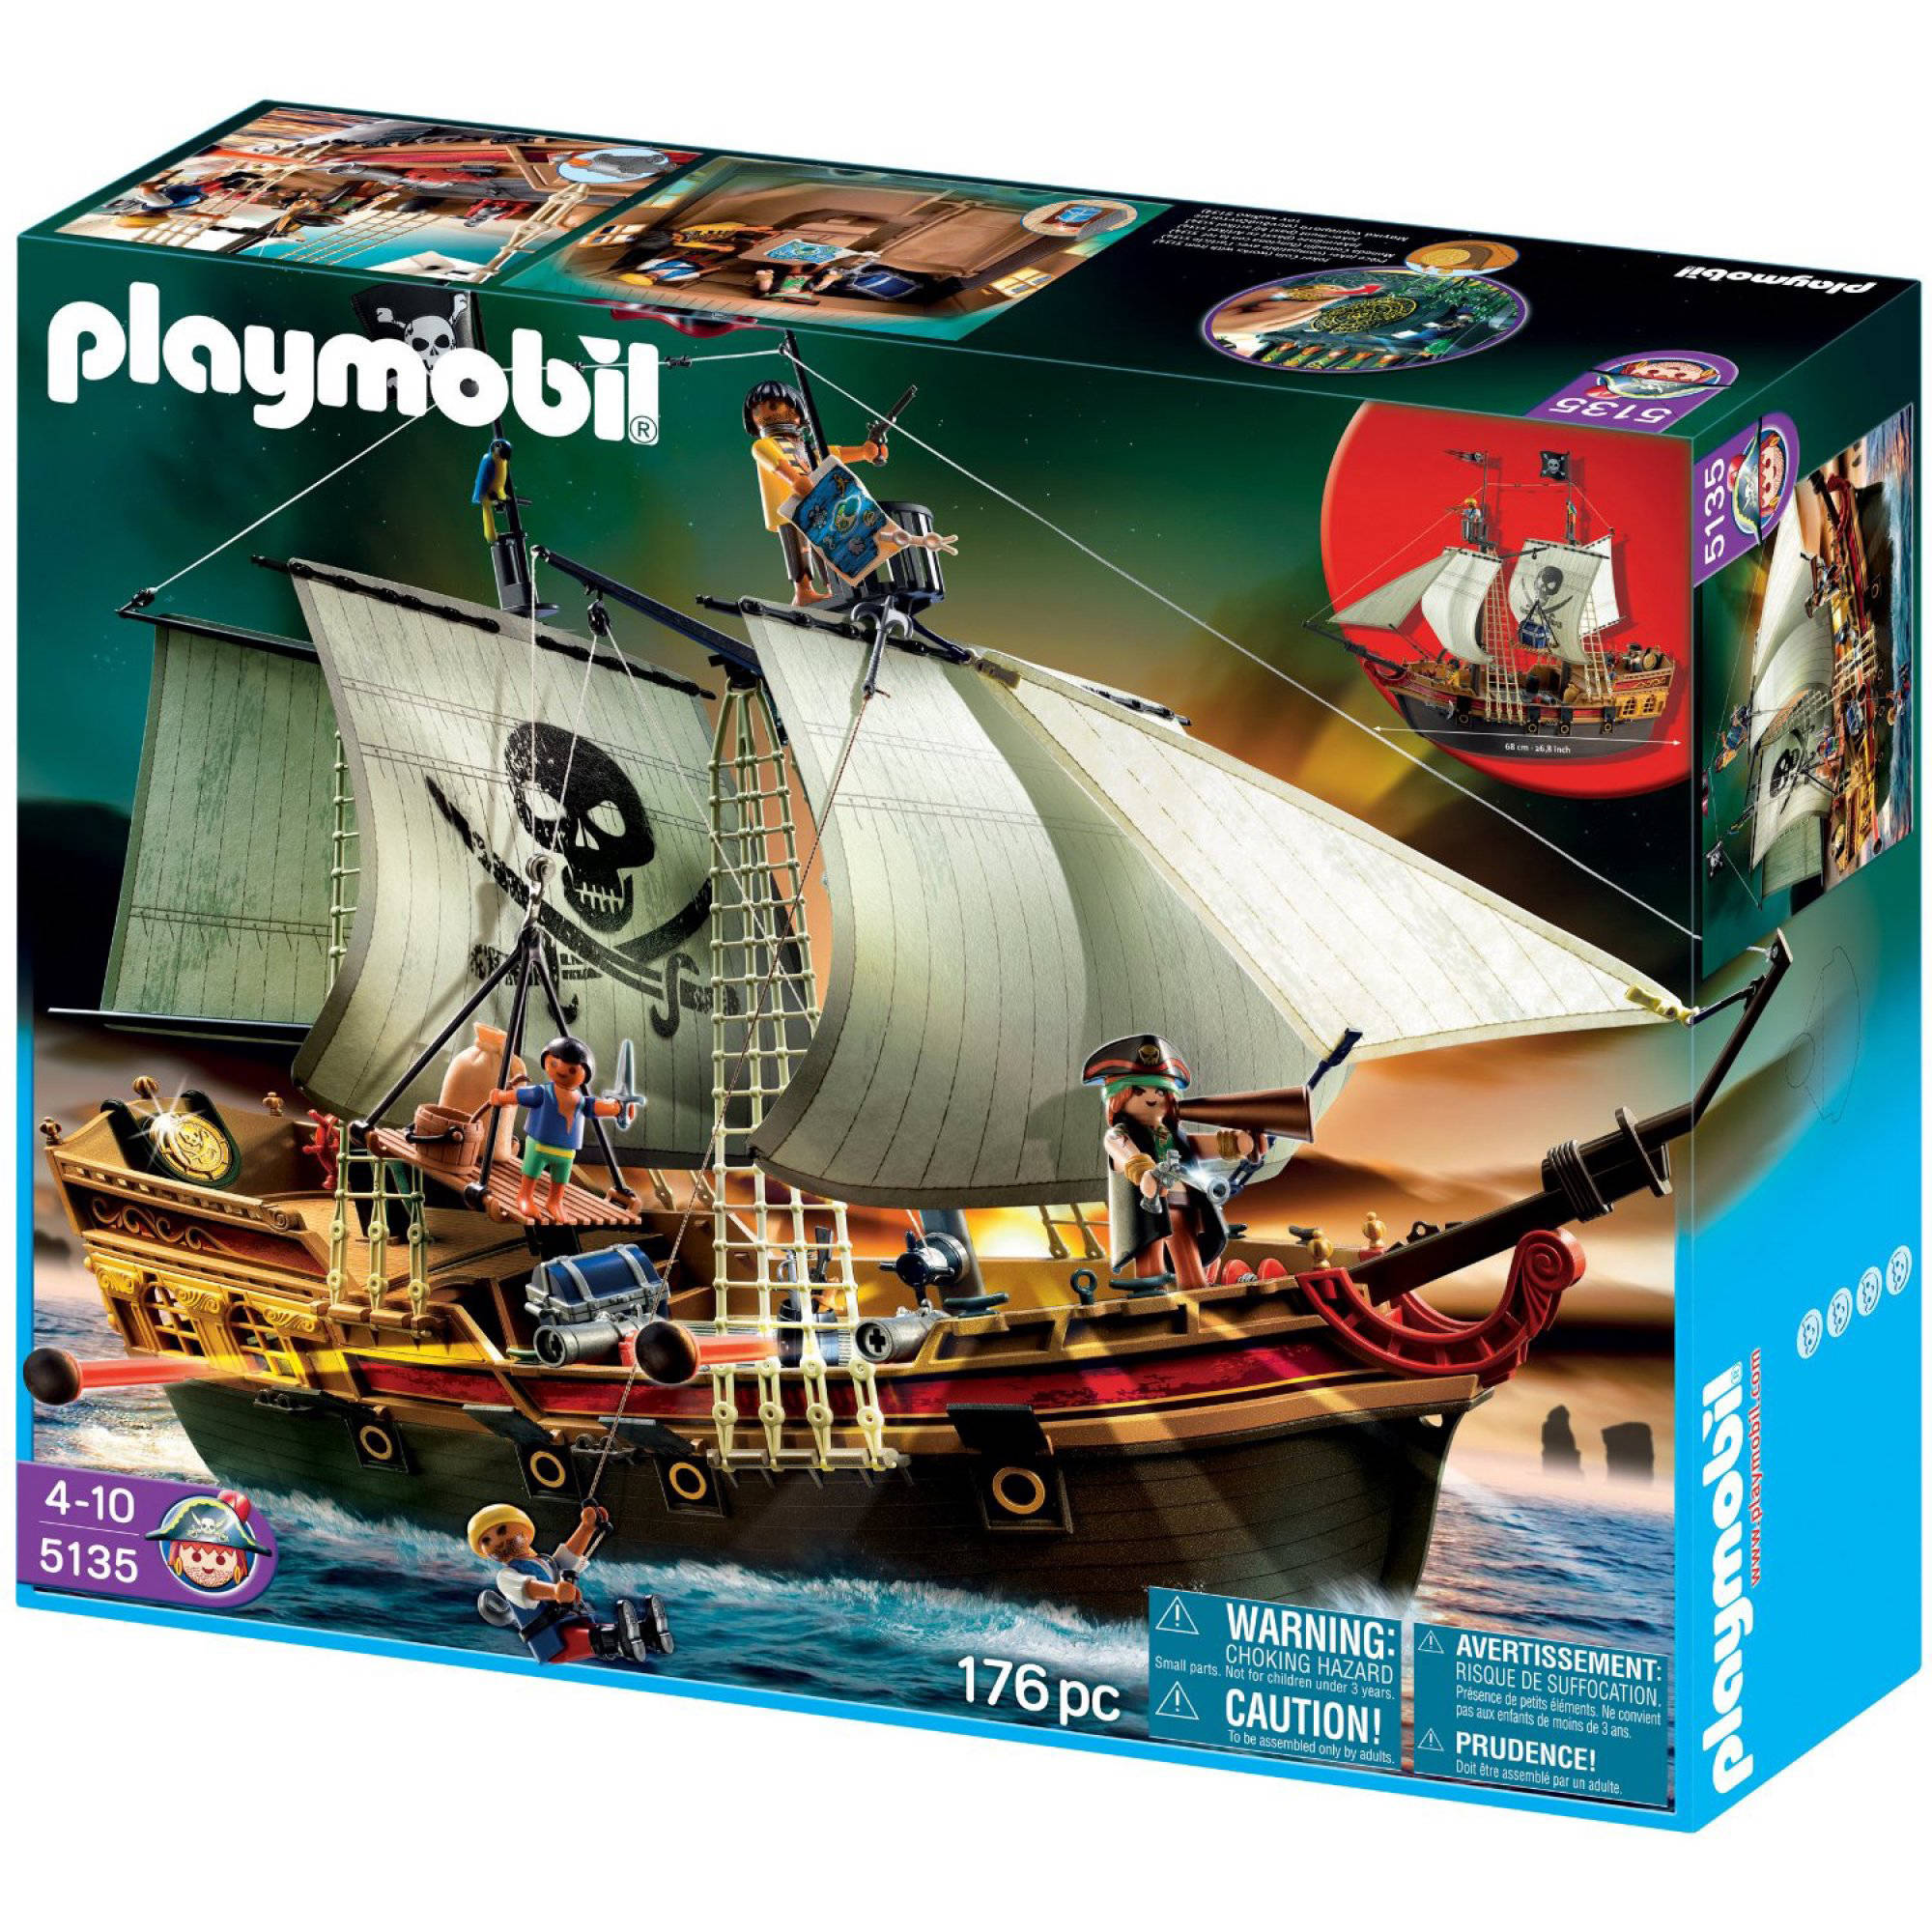 PLAYMOBIL Large Pirate Ship 176 Piece Set by PLAYMOBIL